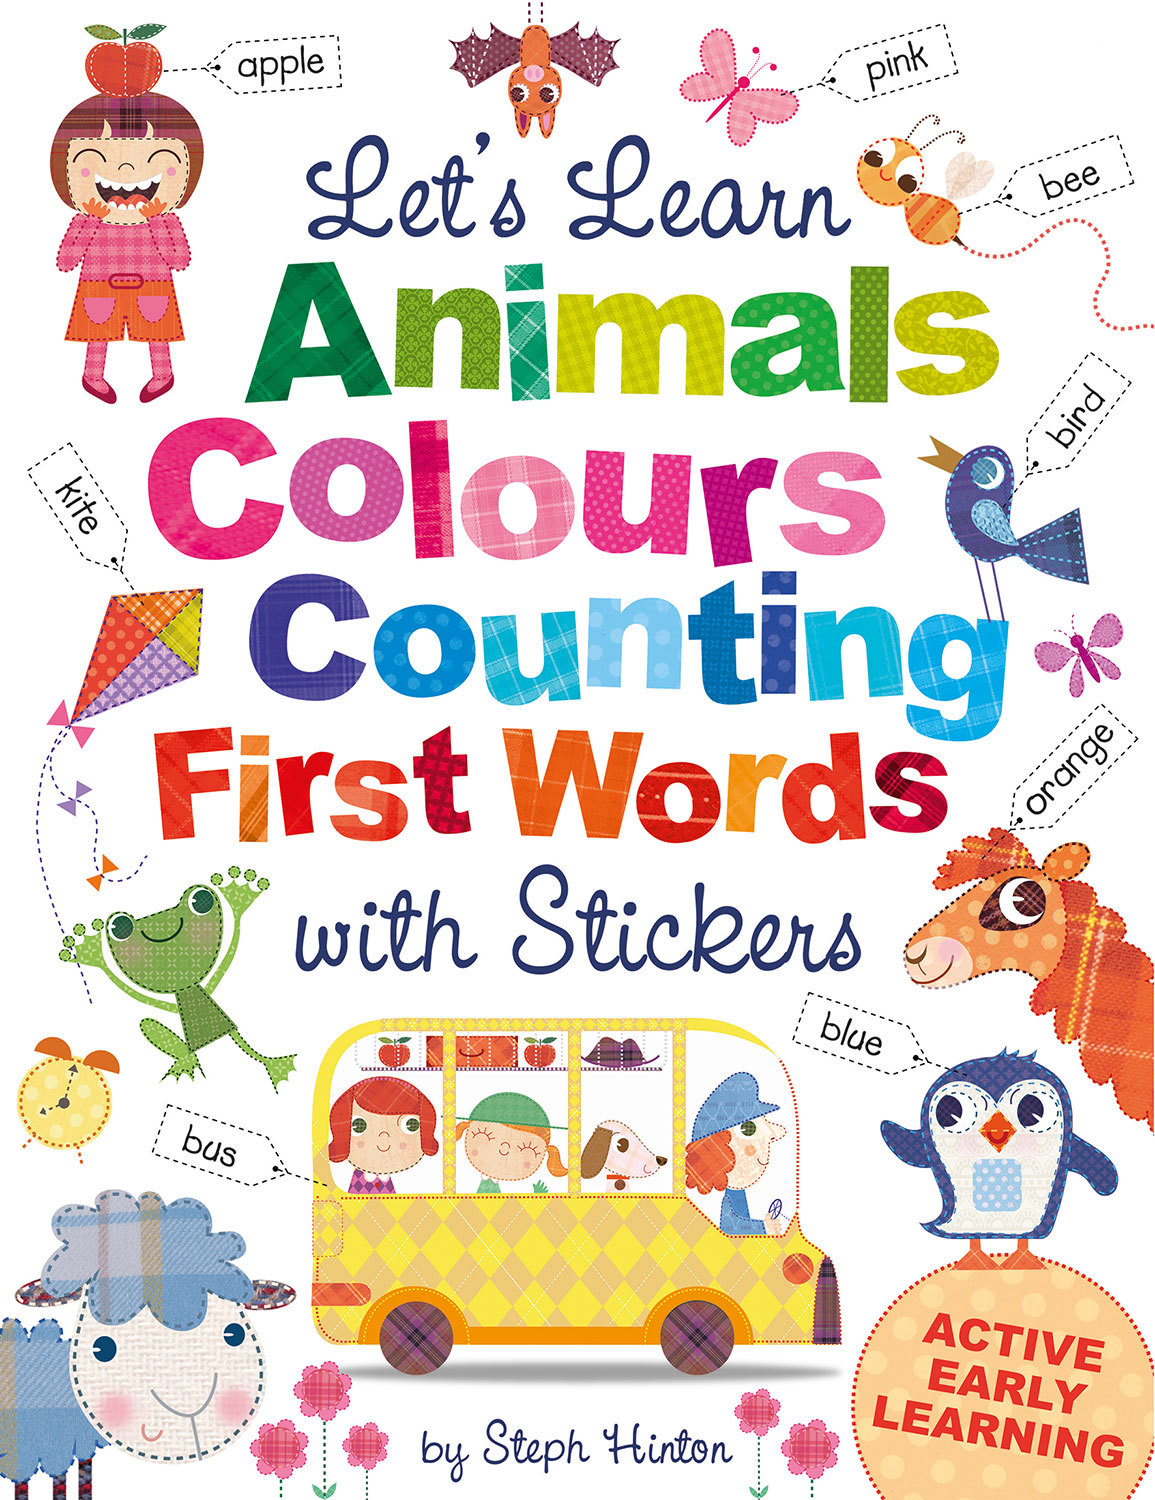 LET'S LEARN ANIMALS, COLOURS, COUNTING, FIRST WORDS, WITH STICKERS